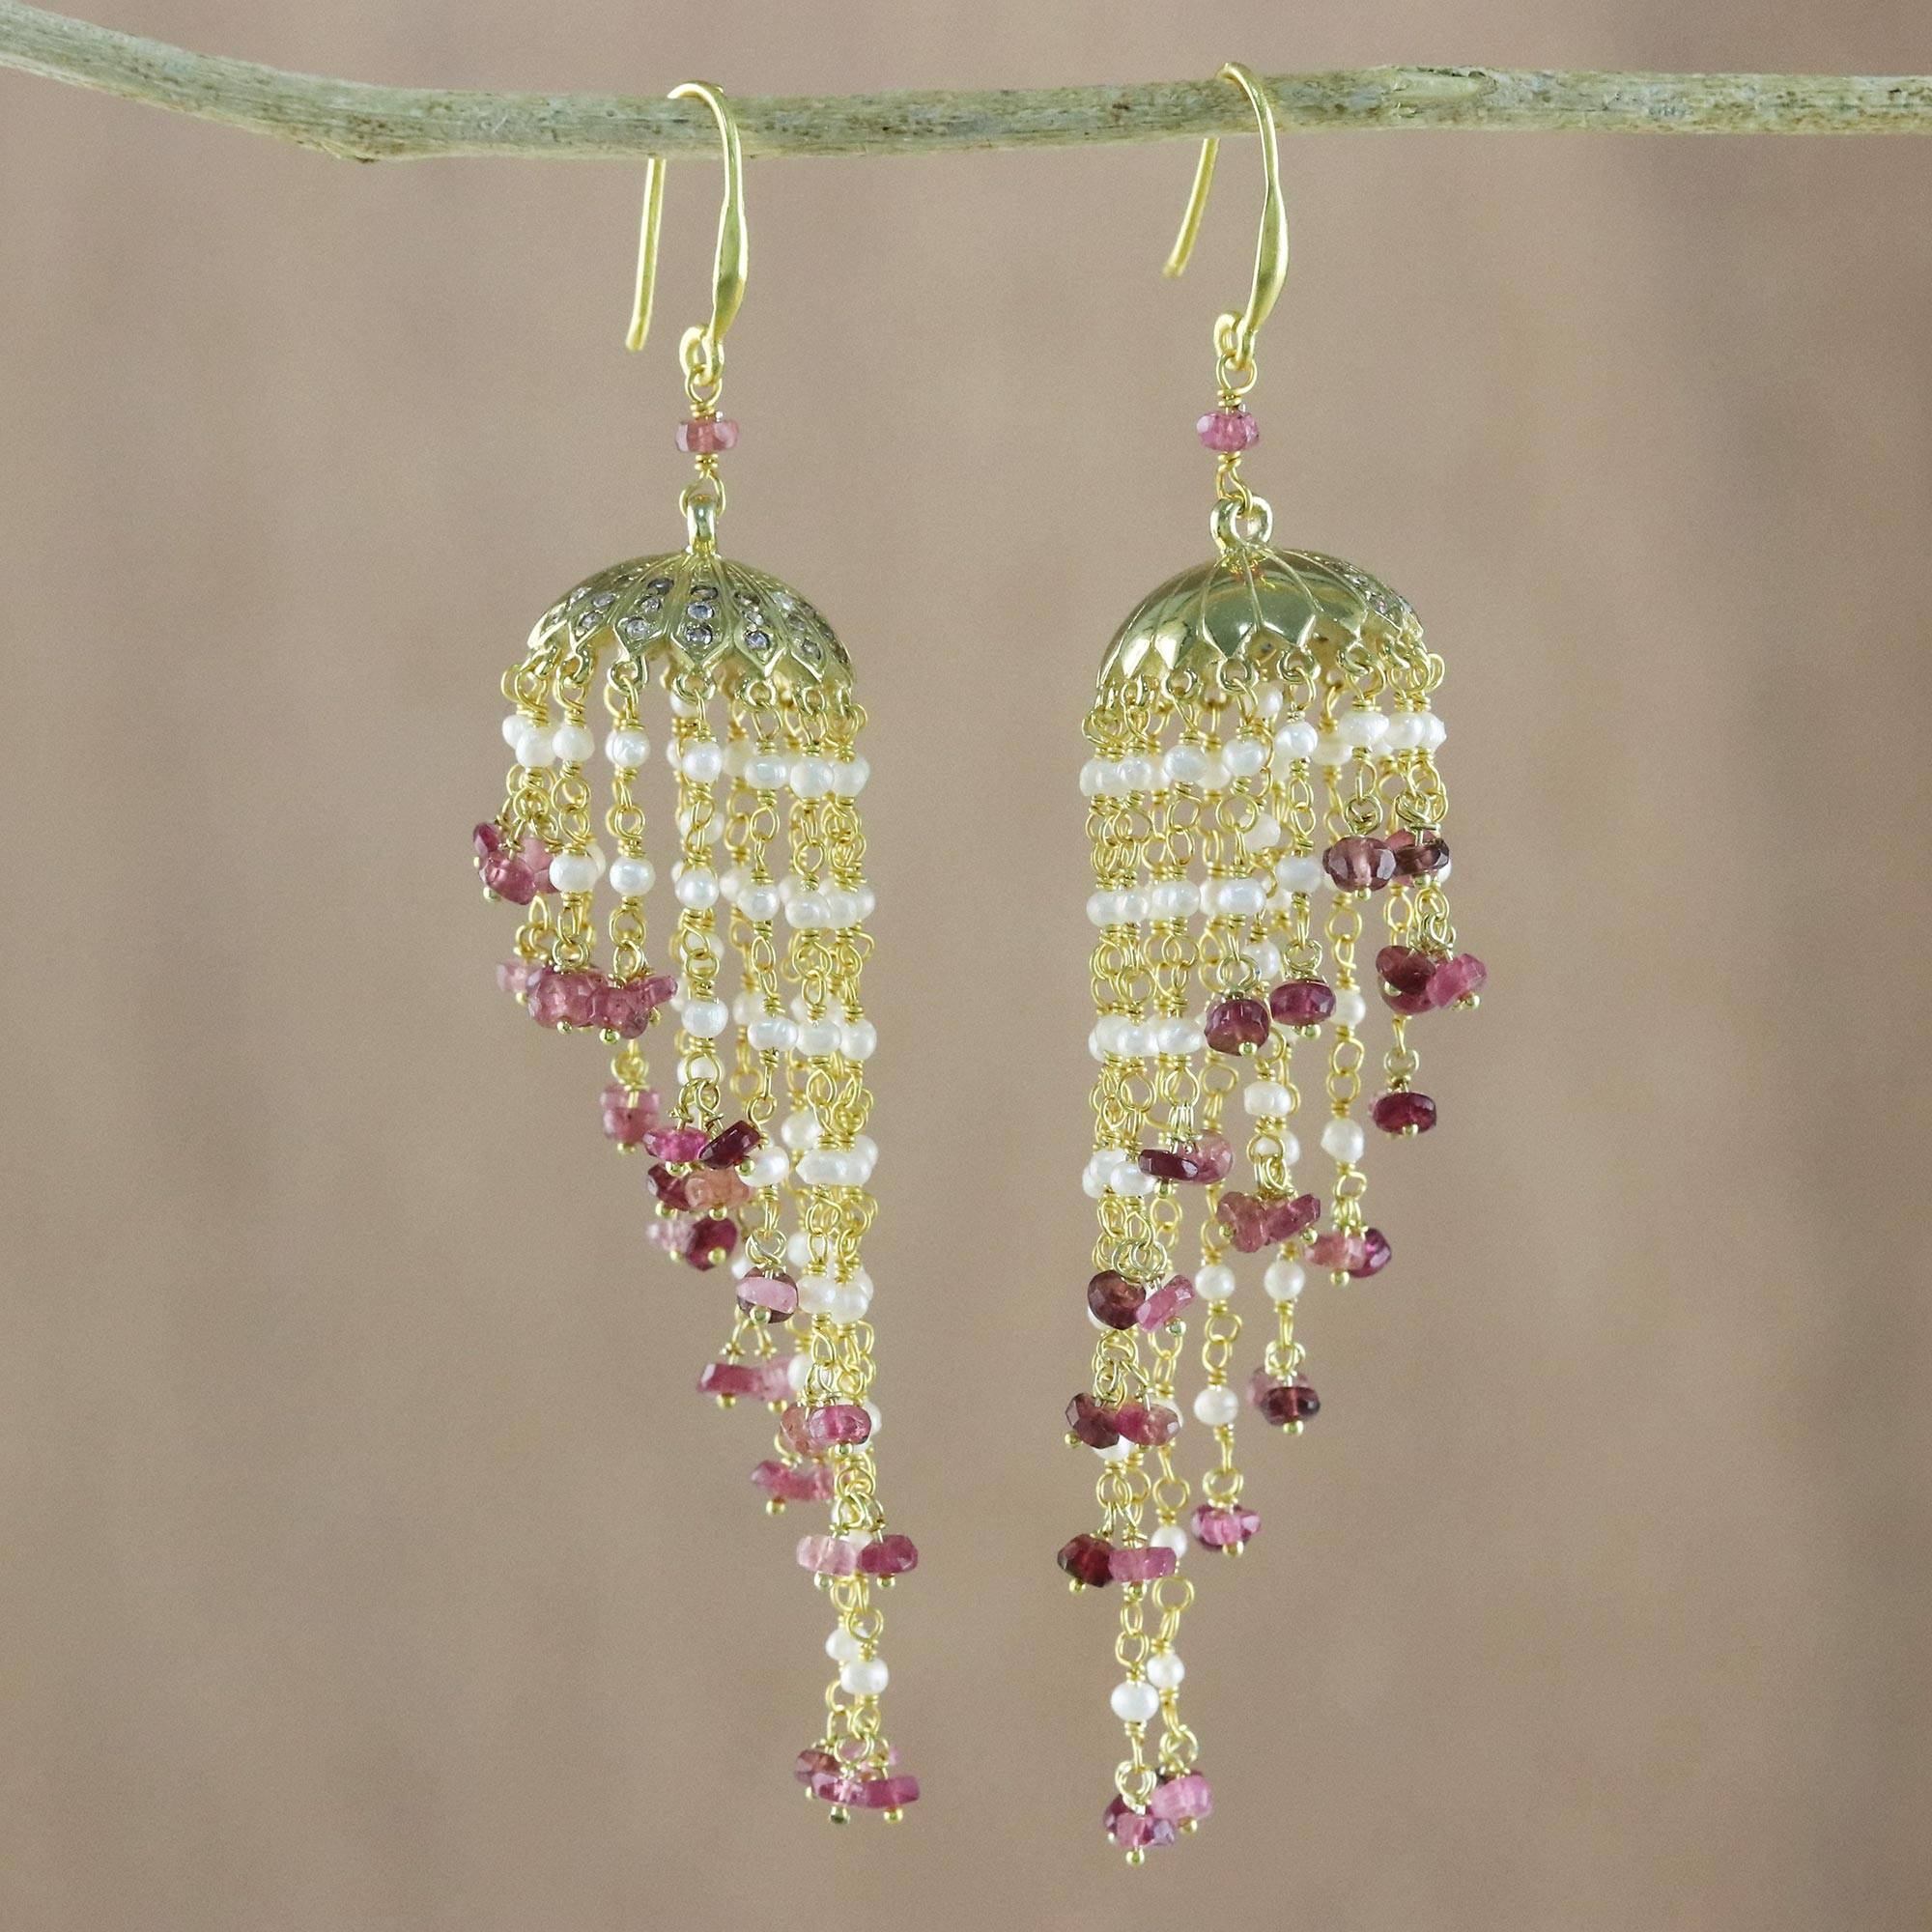 Gemstone Silver Jewelry Gold Plated Fine Hanging Earring Handmade Wholesaler New